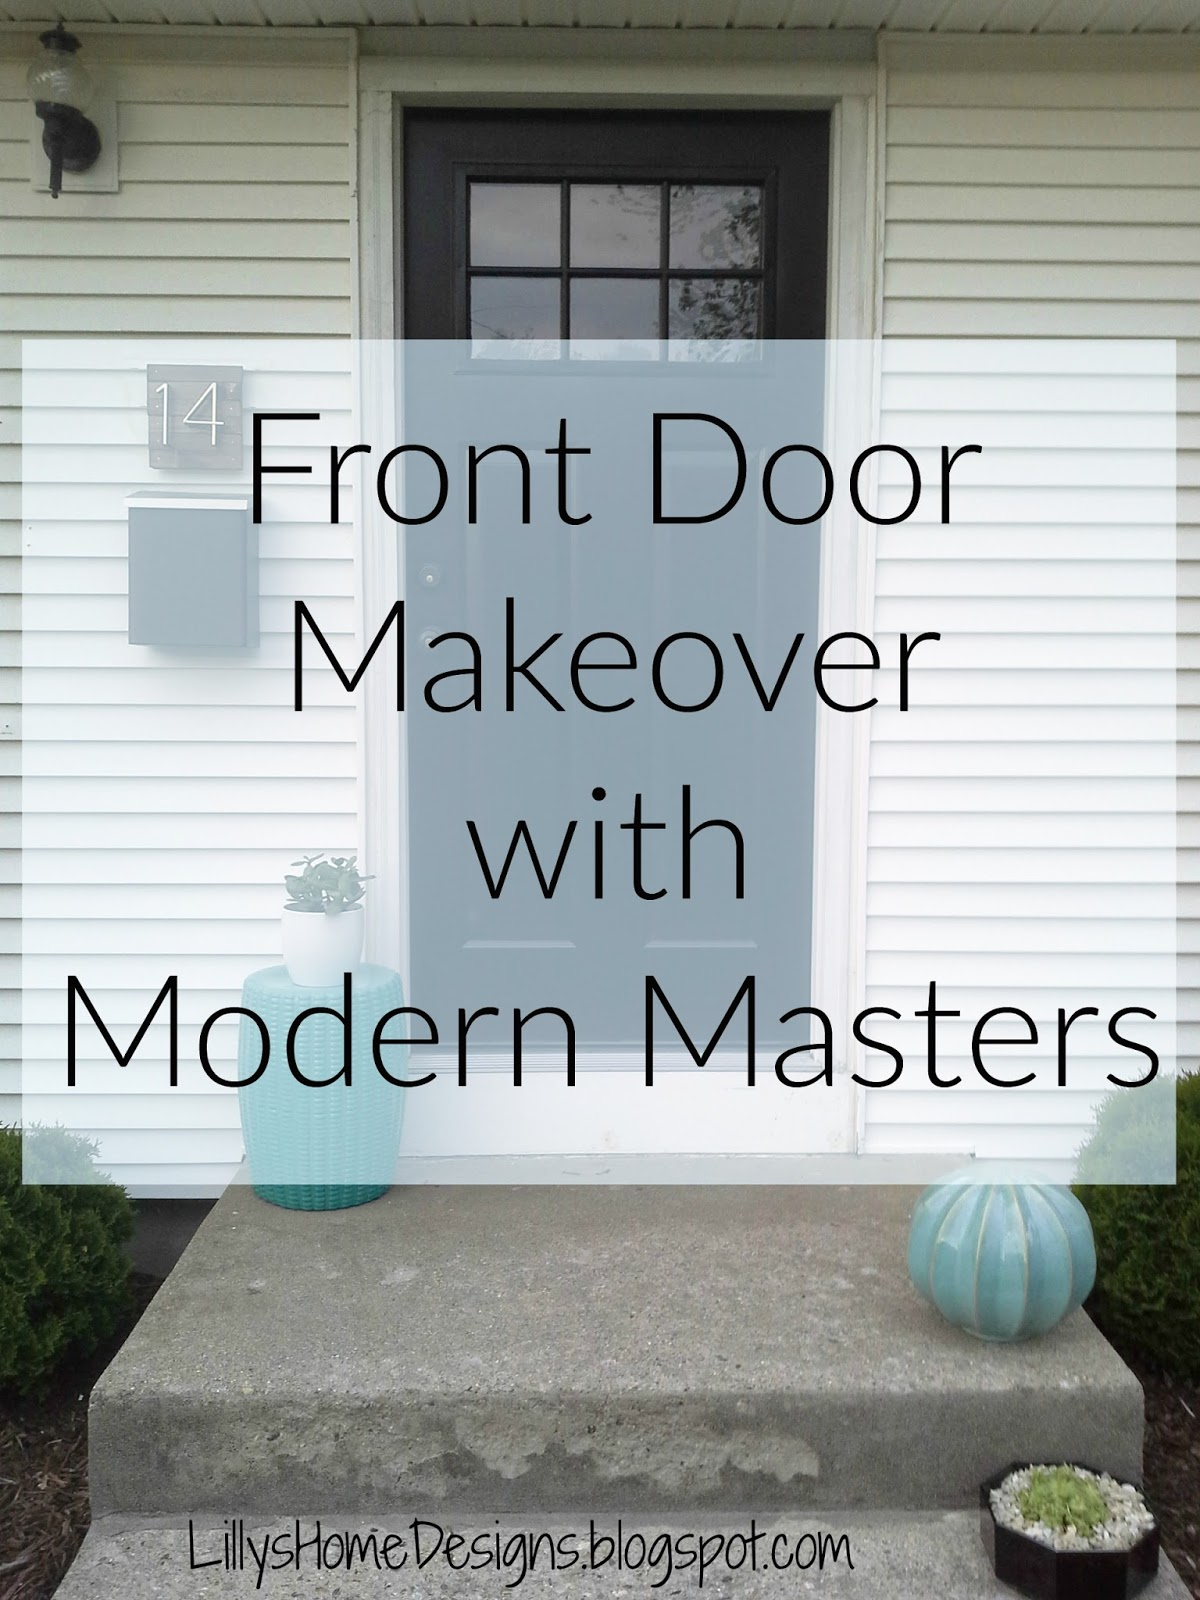 Lilly\'s Home Designs: Front Door Makeover With Modern Masters